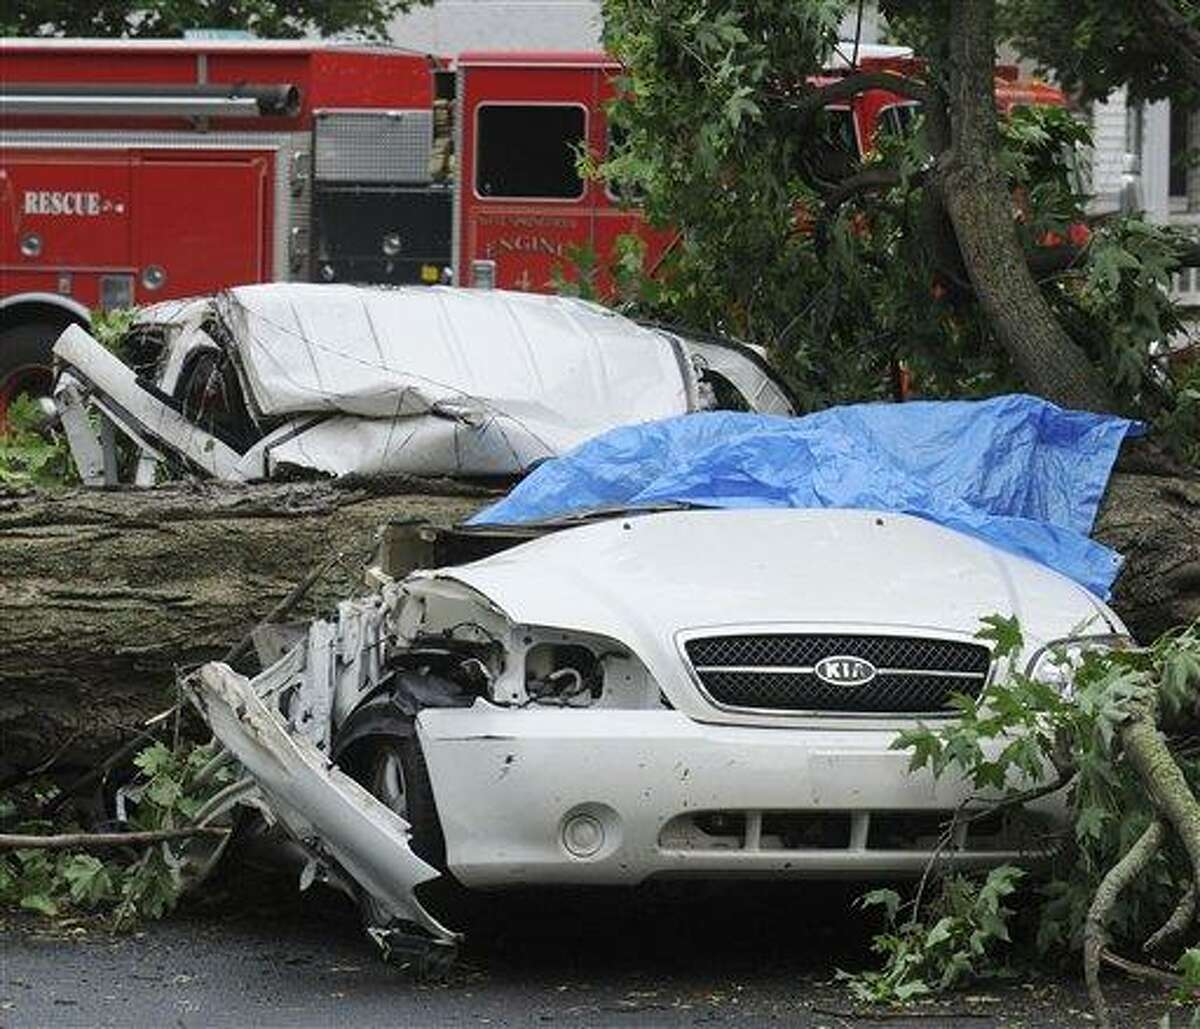 A car sits crushed by a tree on Main Street following a tornado touchdown in West Springfield, Mass., Wednesday, June 1, 2011. (AP Photo/Springfield Republican, Dave Roback)